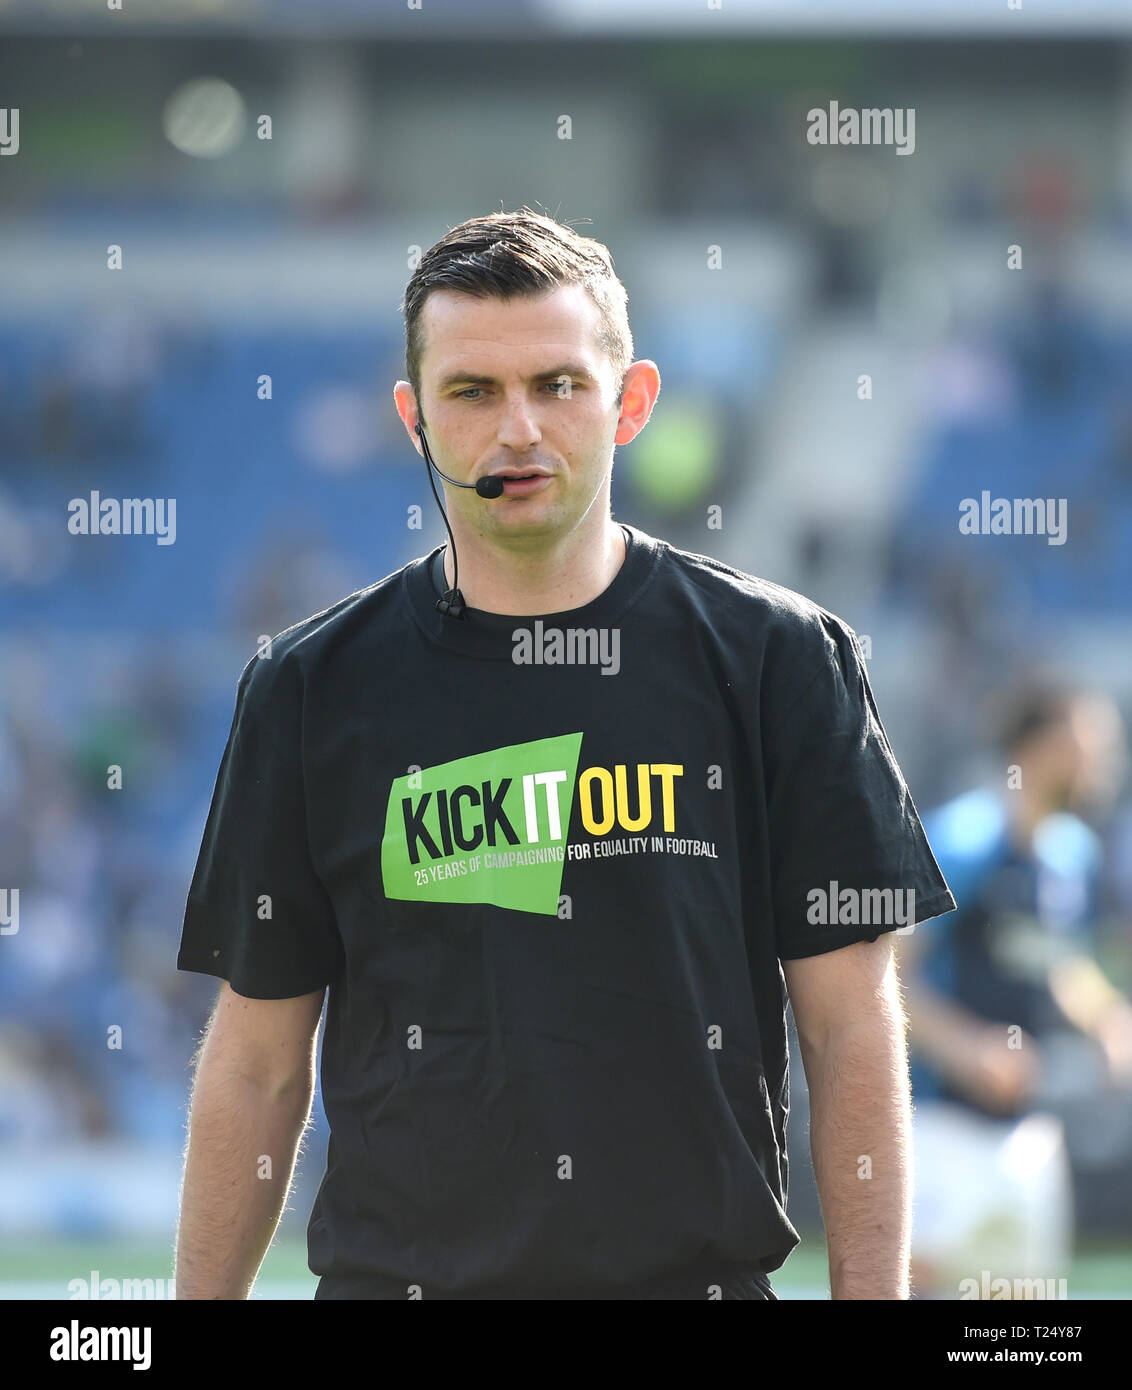 Referee Michael Oliver wearing a Kick it Out shirt before the Premier League match between Brighton & Hove Albion and Southampton at The American Express Community Stadium . 30 March 2019 Editorial use only. No merchandising. For Football images FA and Premier League restrictions apply inc. no internet/mobile usage without FAPL license - for details contact Football Dataco - Stock Image